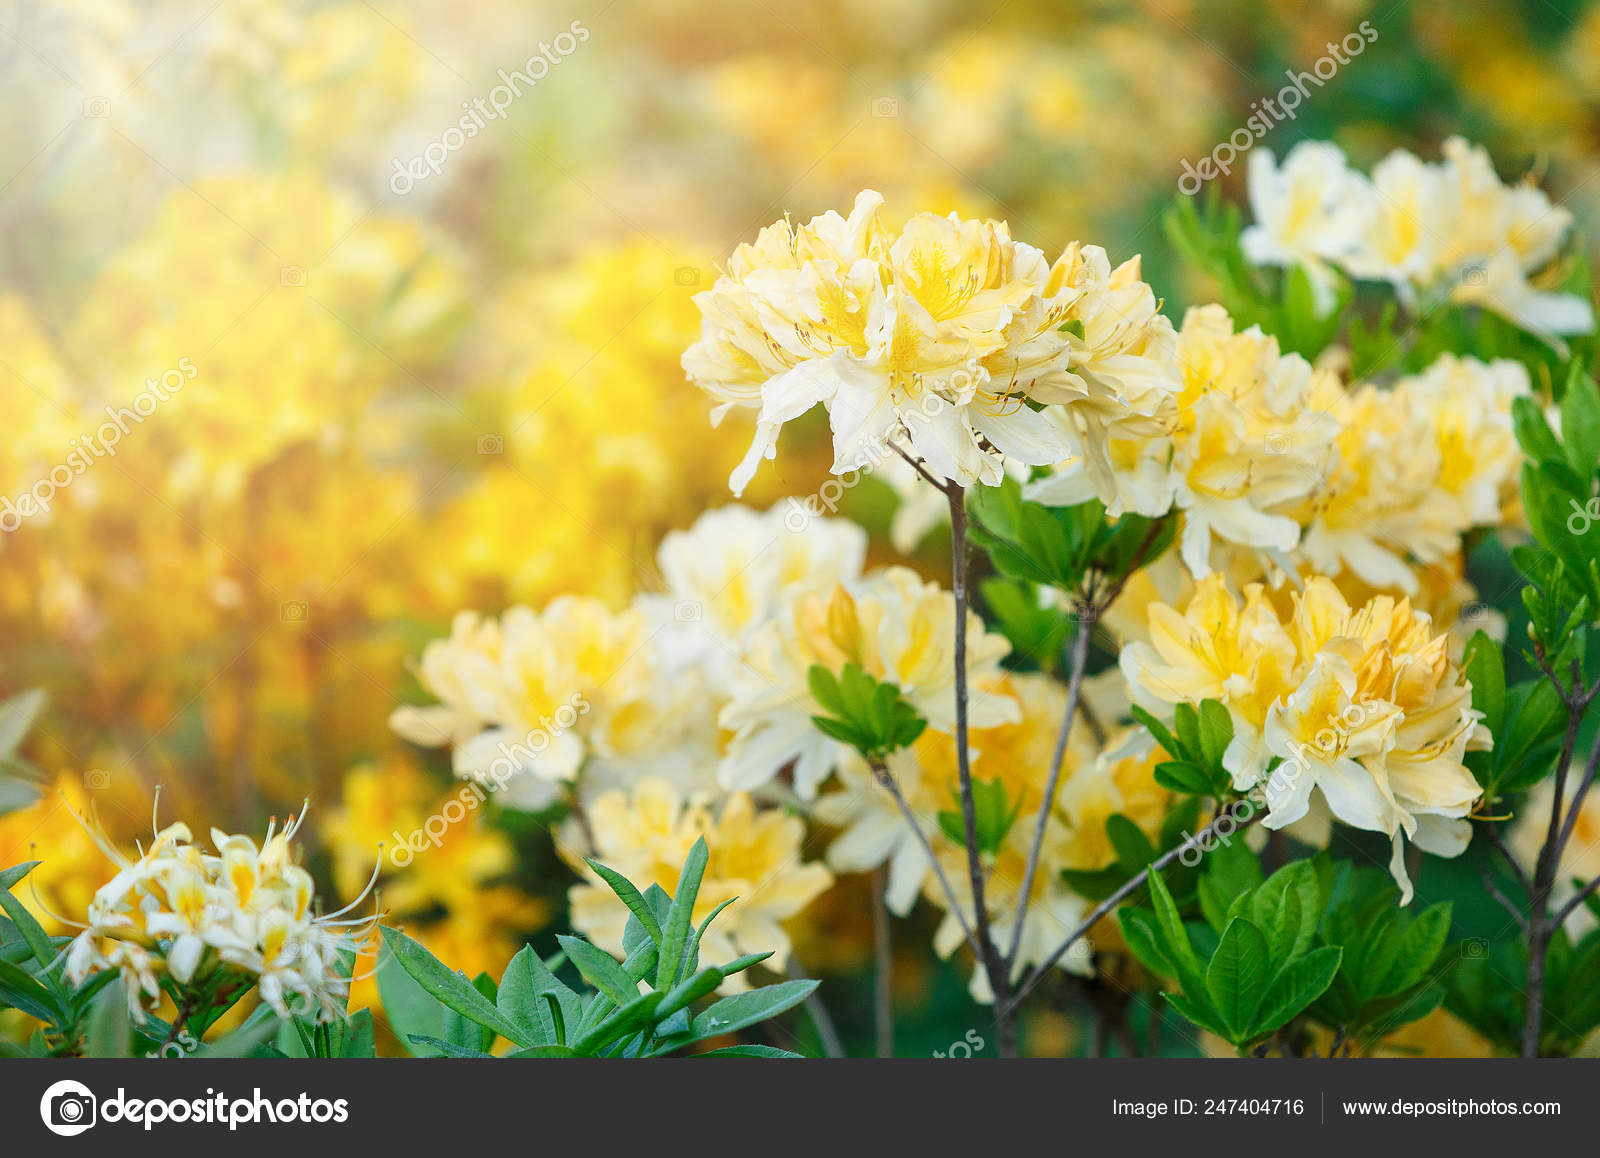 Colorful Yellow Azalea Flowers Garden Blooming Bushes Bright